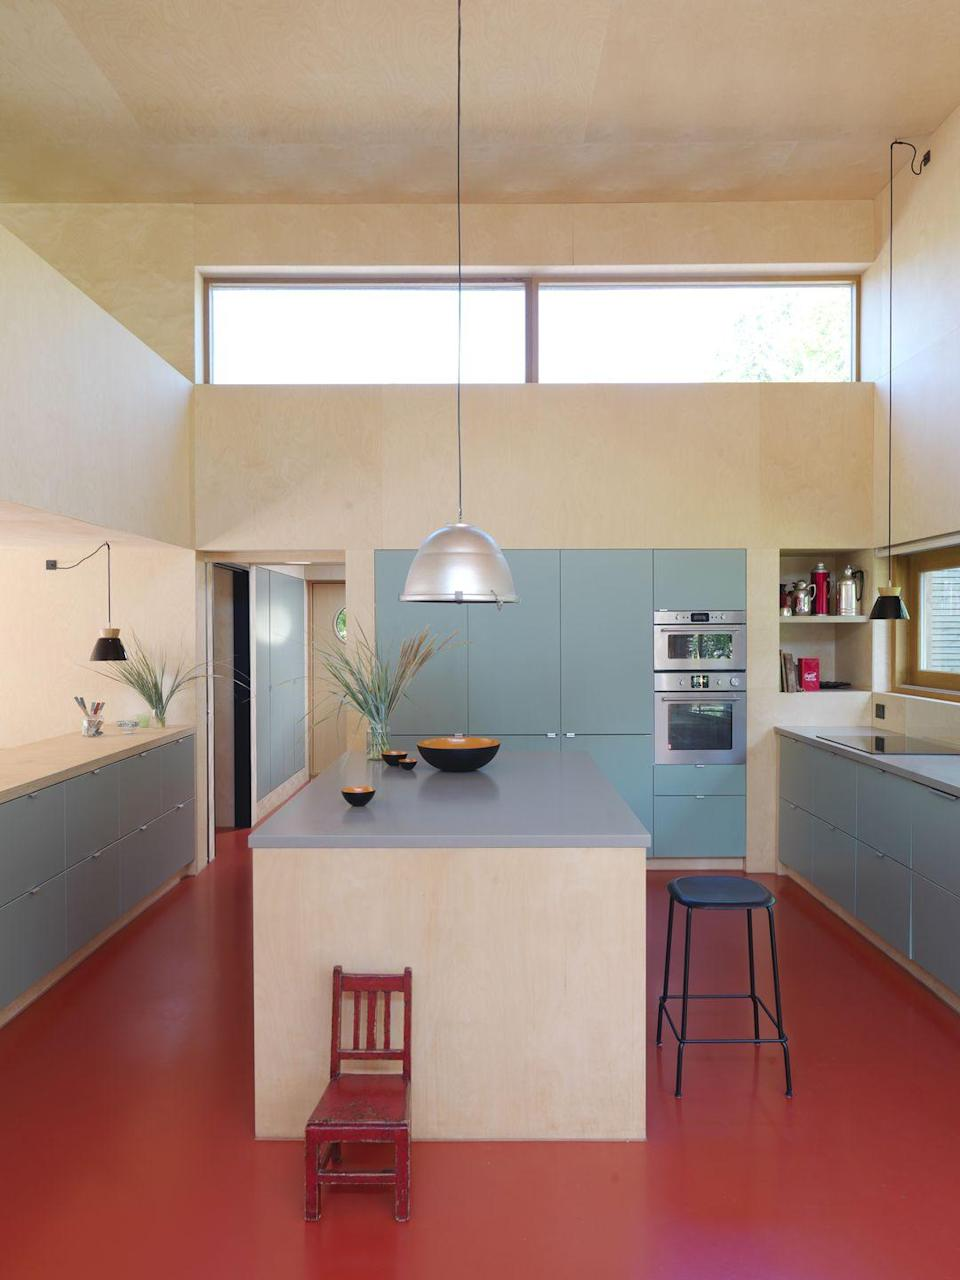 """<p>Often forgotten, the kitchen floor offers a world of opportunity to add bold colour. This <a href=""""https://elledecoration.co.uk/houses/a36761652/colourful-eco-home-denmark/"""" rel=""""nofollow noopener"""" target=""""_blank"""" data-ylk=""""slk:holiday home in Denmark"""" class=""""link rapid-noclick-resp"""">holiday home in Denmark</a> by architecture firm Cold Wet & Dark features a poured epoxy resin floor in a dramatic red shade, but there are countless vinyls and rubber options on the market for a more affordable option. Try the Colour Flooring Company for similar. <a href=""""https://www.colourflooring.co.uk/"""" rel=""""nofollow noopener"""" target=""""_blank"""" data-ylk=""""slk:colourflooring.co.uk"""" class=""""link rapid-noclick-resp"""">colourflooring.co.uk </a></p>"""